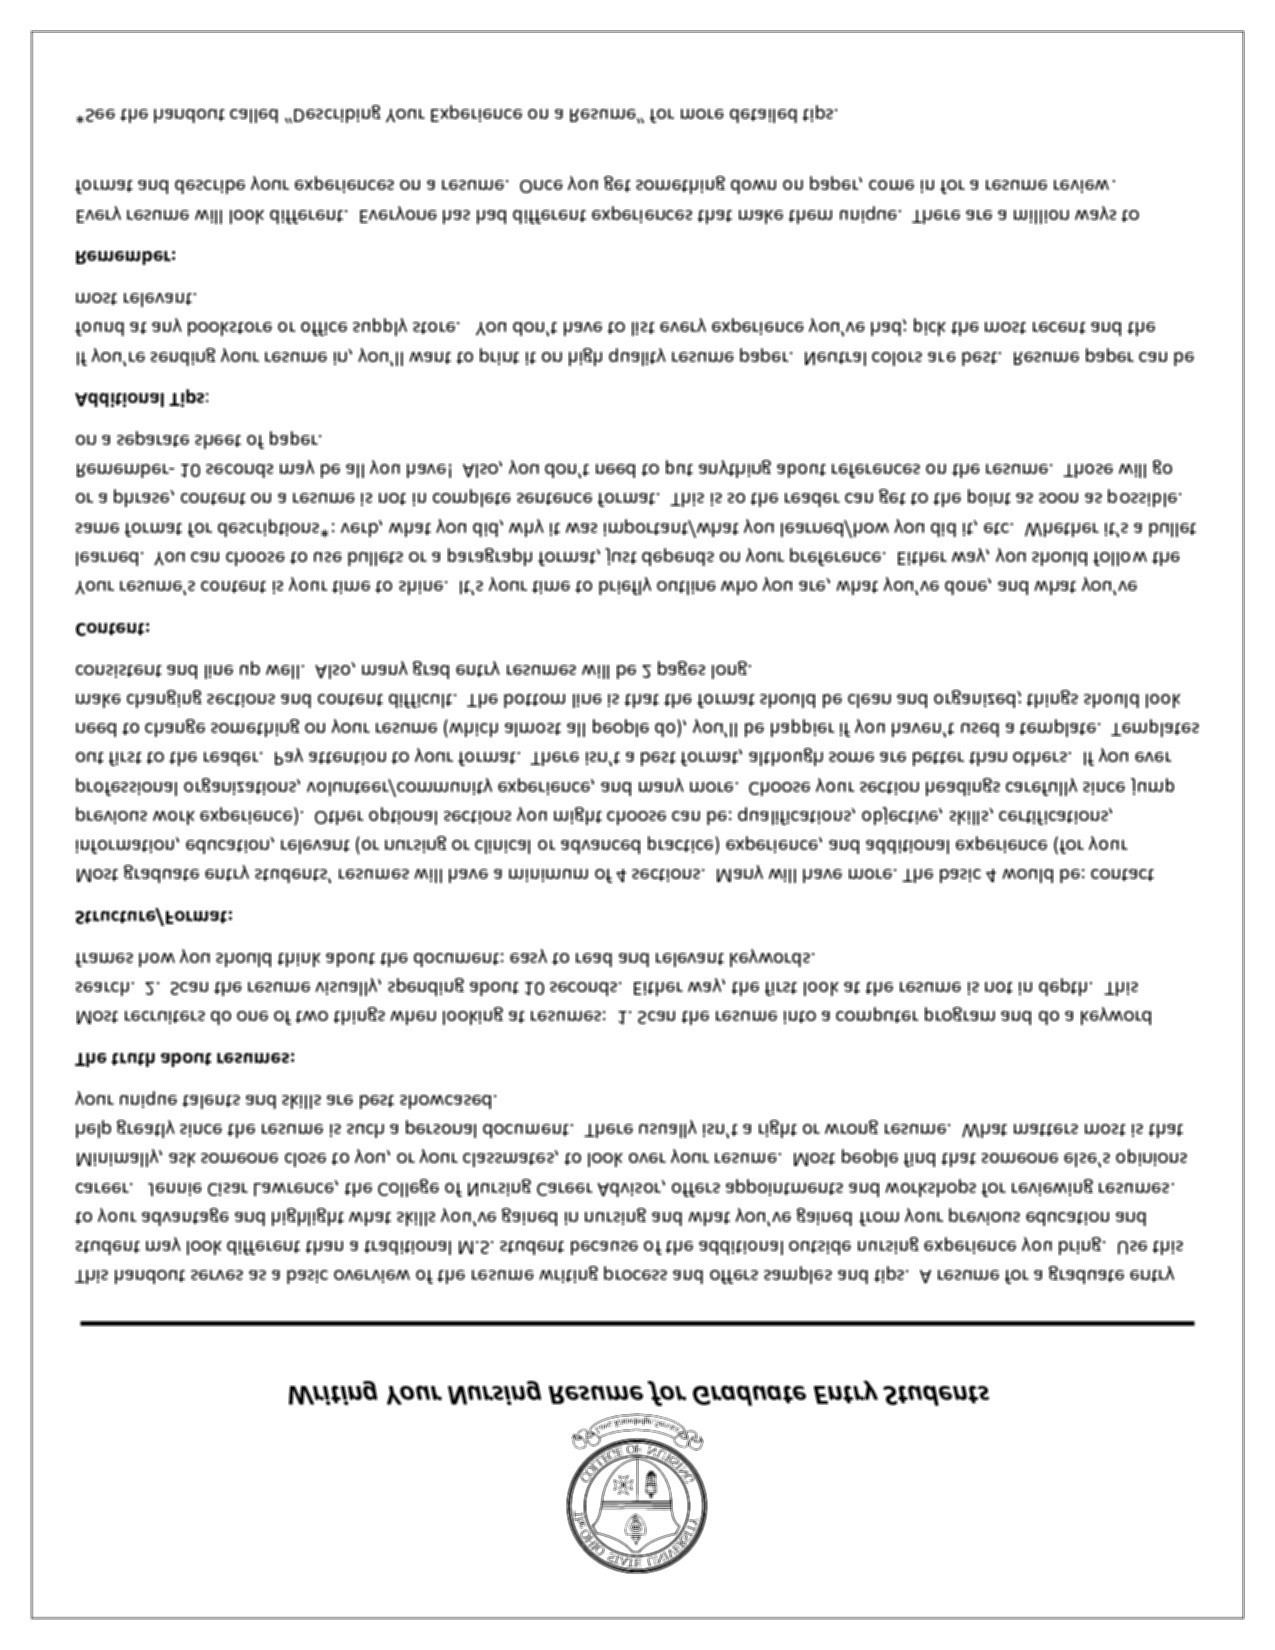 Job Description for Resume - Resume Job Description New New Grad Nursing Resume Awesome Nursing